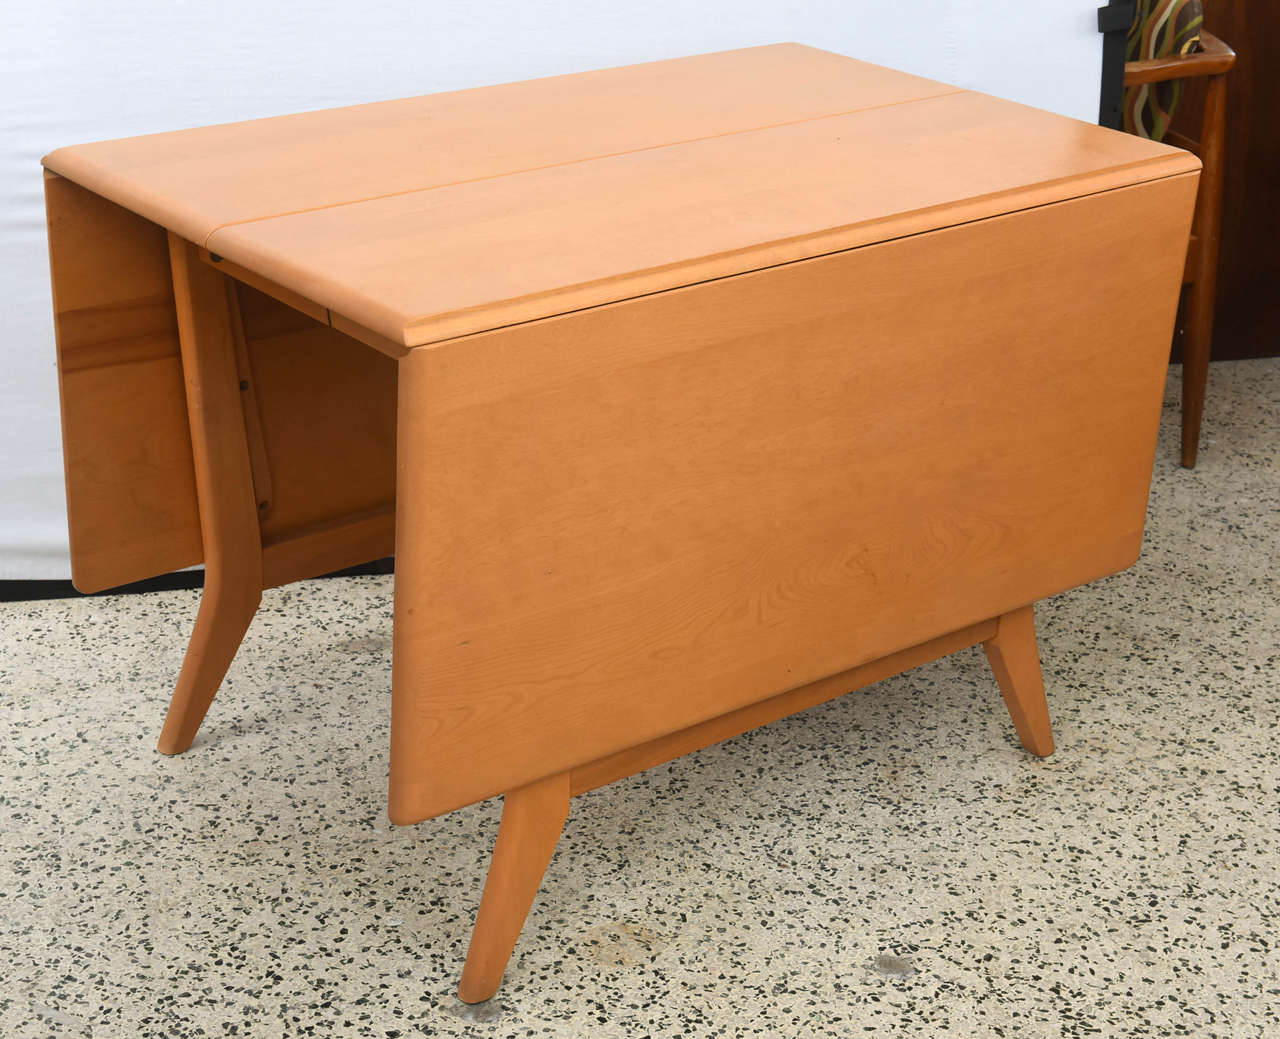 Dining Room Tables With Leaves maple heywood wakefield drop-leaf dining table, 1950s saturday